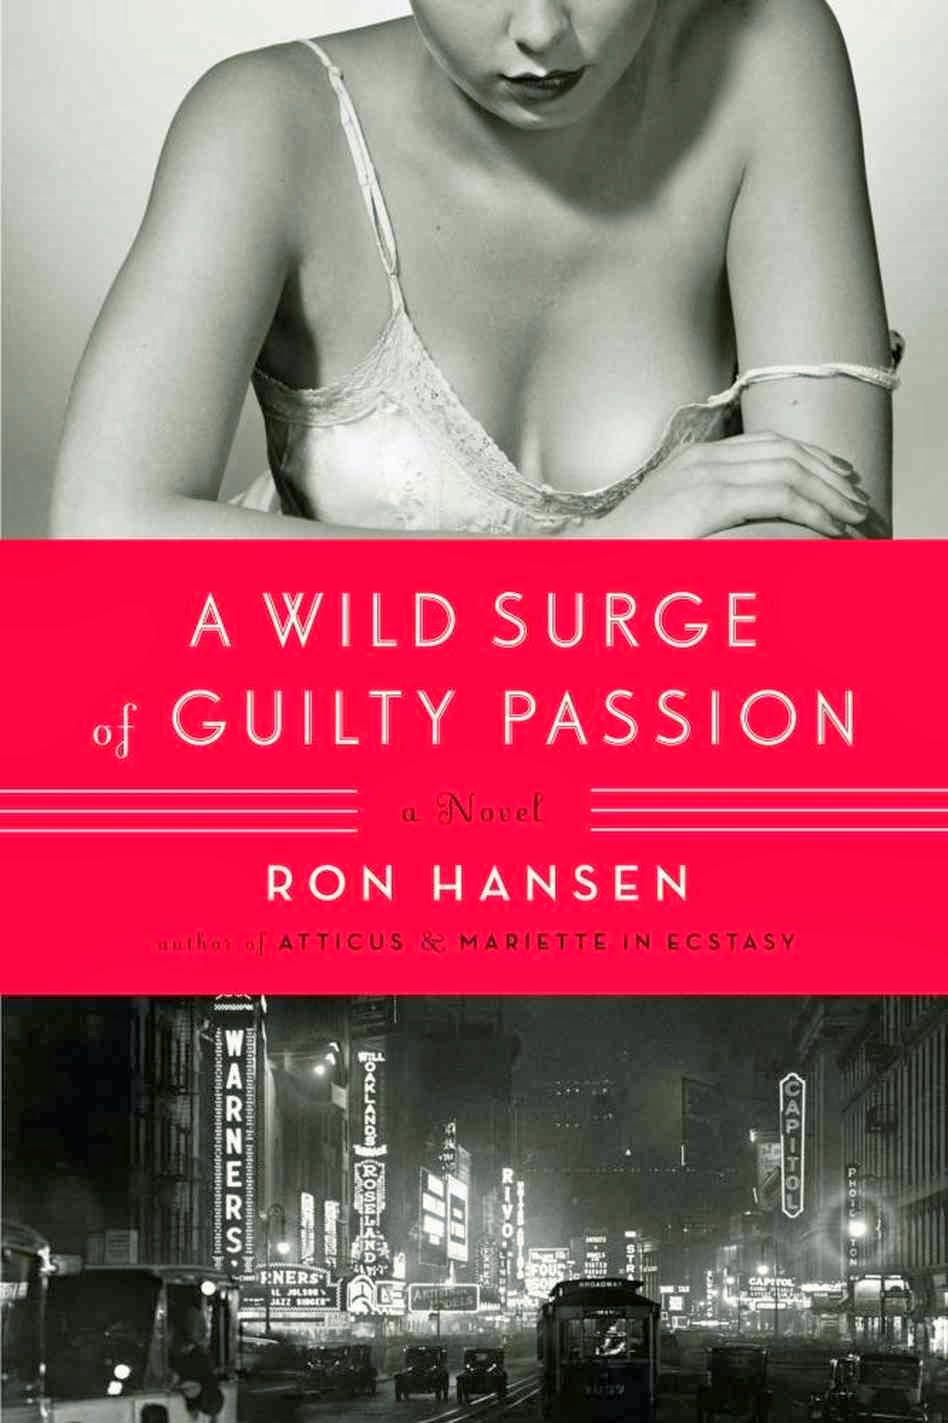 http://discover.halifaxpubliclibraries.ca/?q=title:%22wild%20surge%20of%20guilty%20passion%22%22